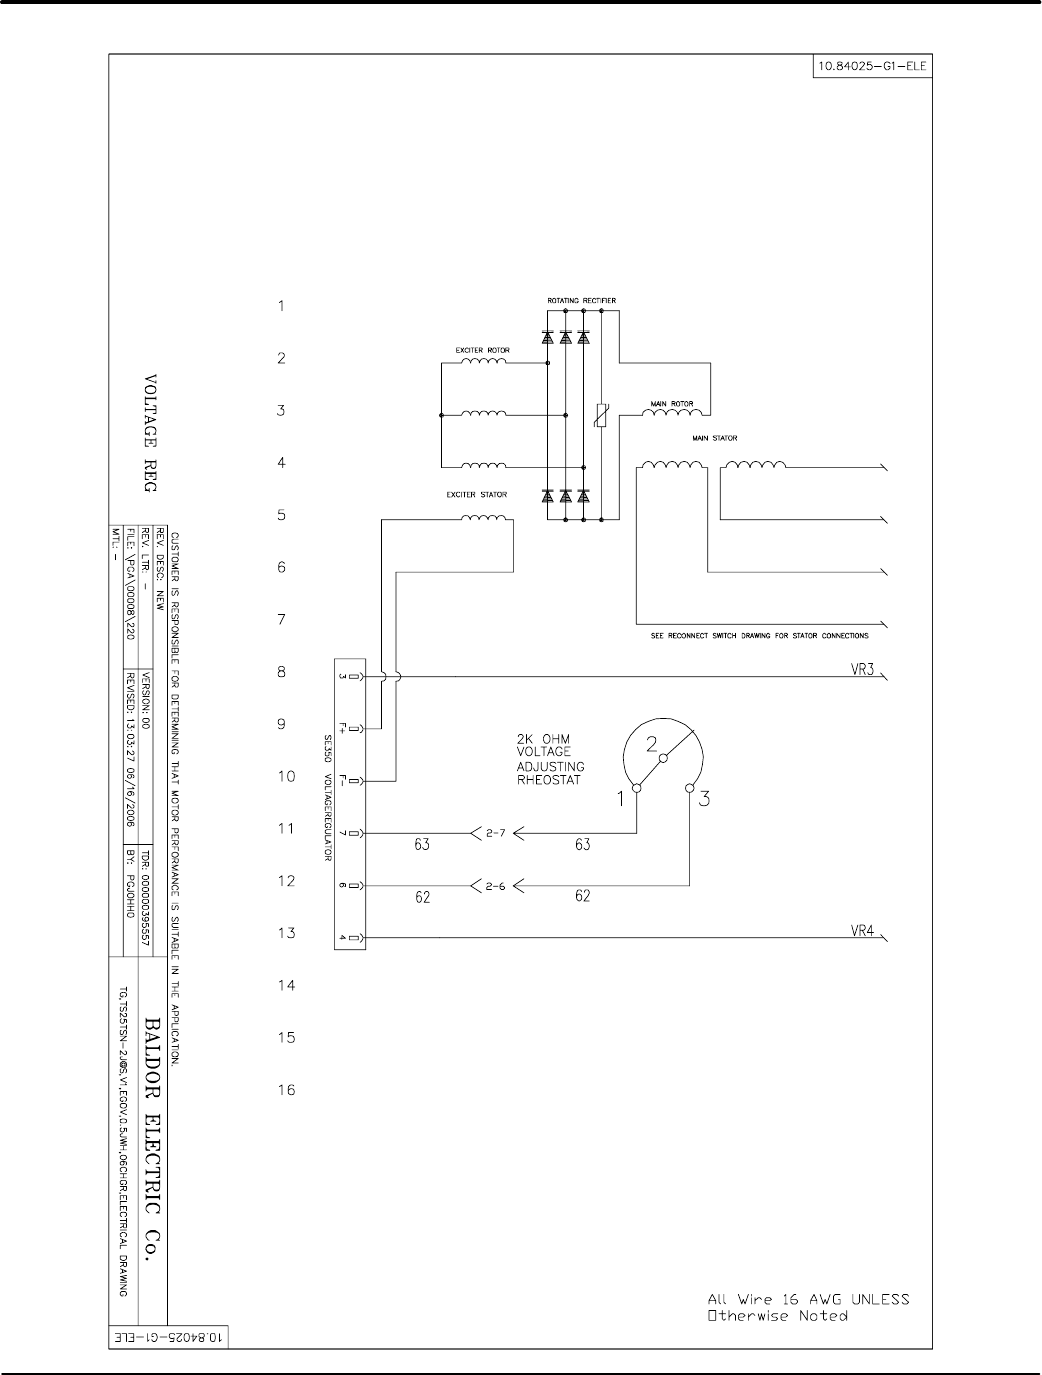 Baldor Ts35 Mn2417 Tier 2 3 Towable Generators User Manual To The High Efficiency Wiring Diagram Diagrams A 7mn2417